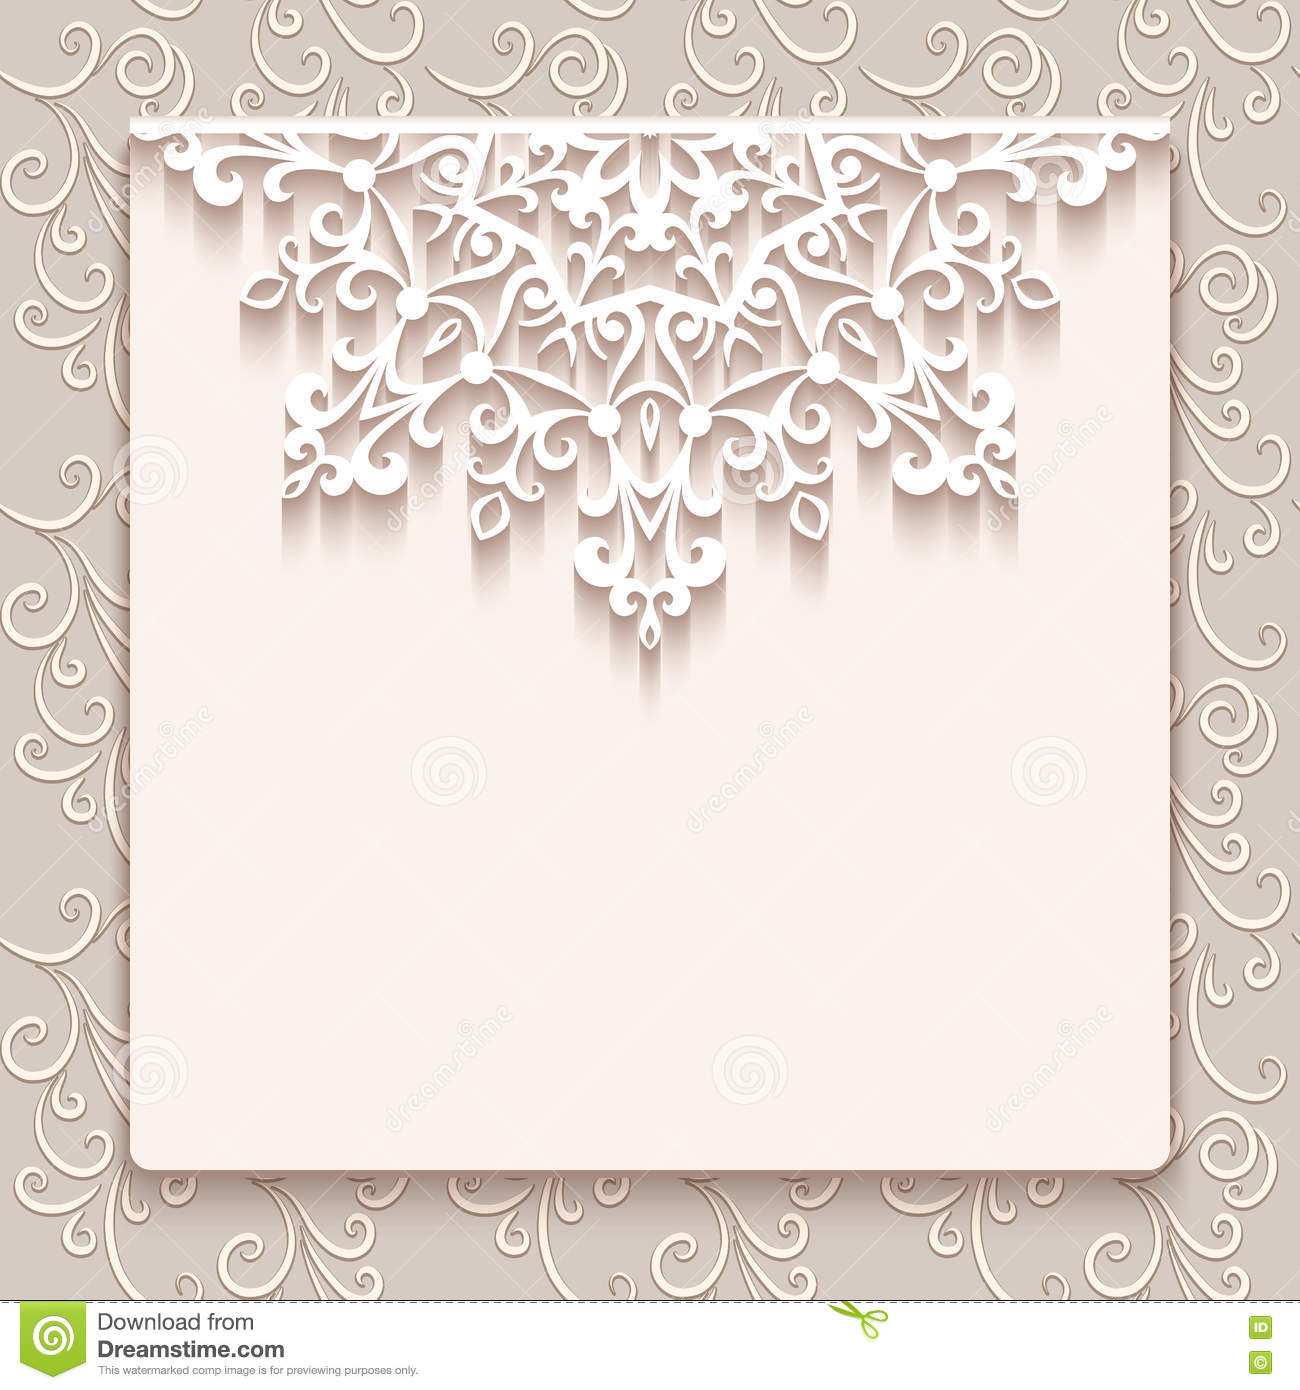 Vintage lace greeting card or wedding invitation